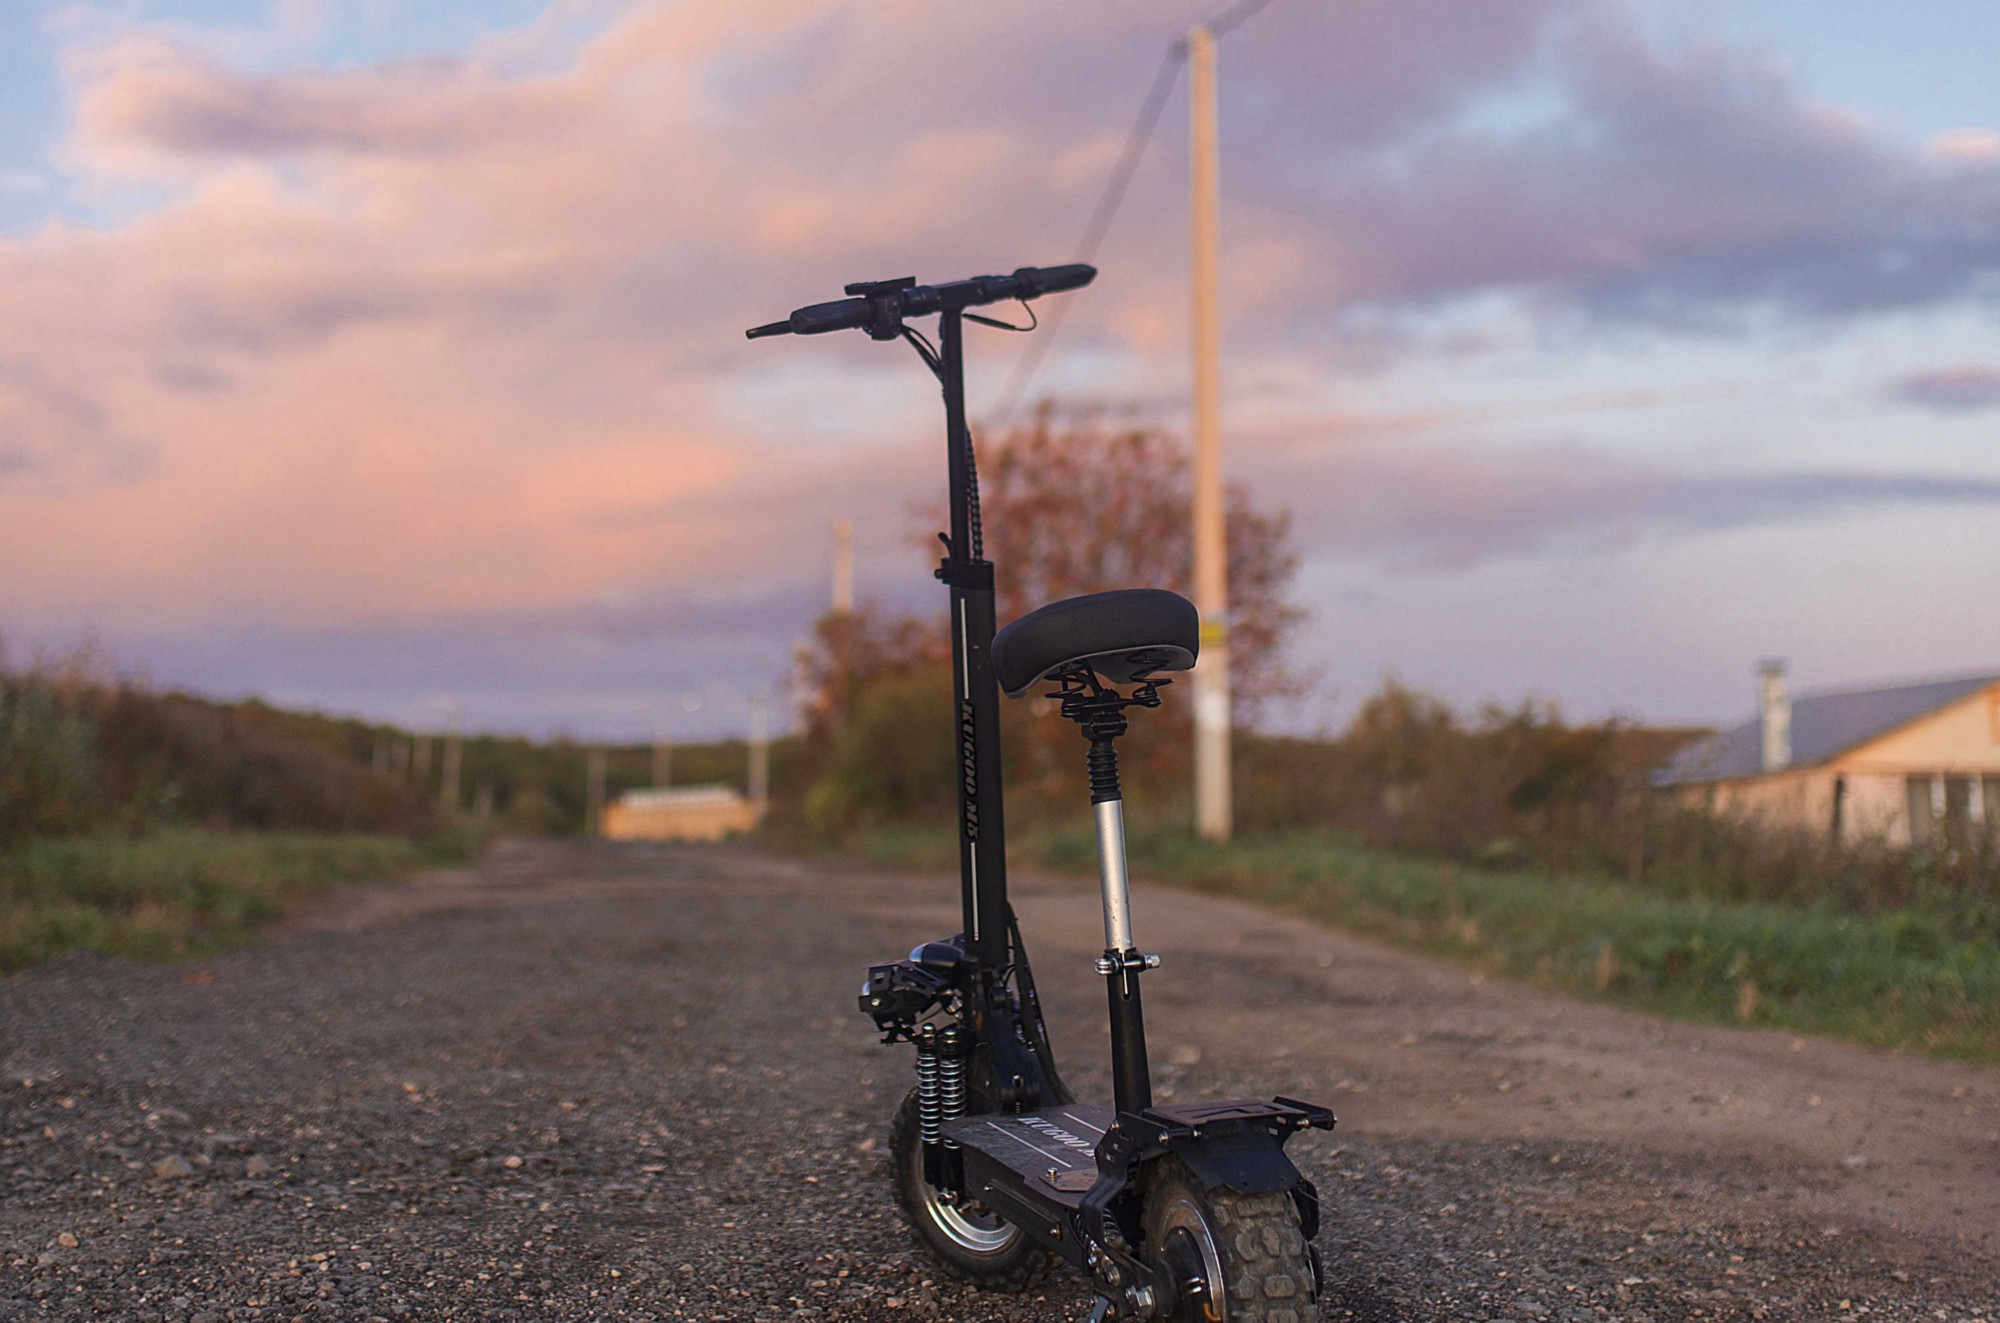 An electric scooter is parked on a country road, as the sun sets.